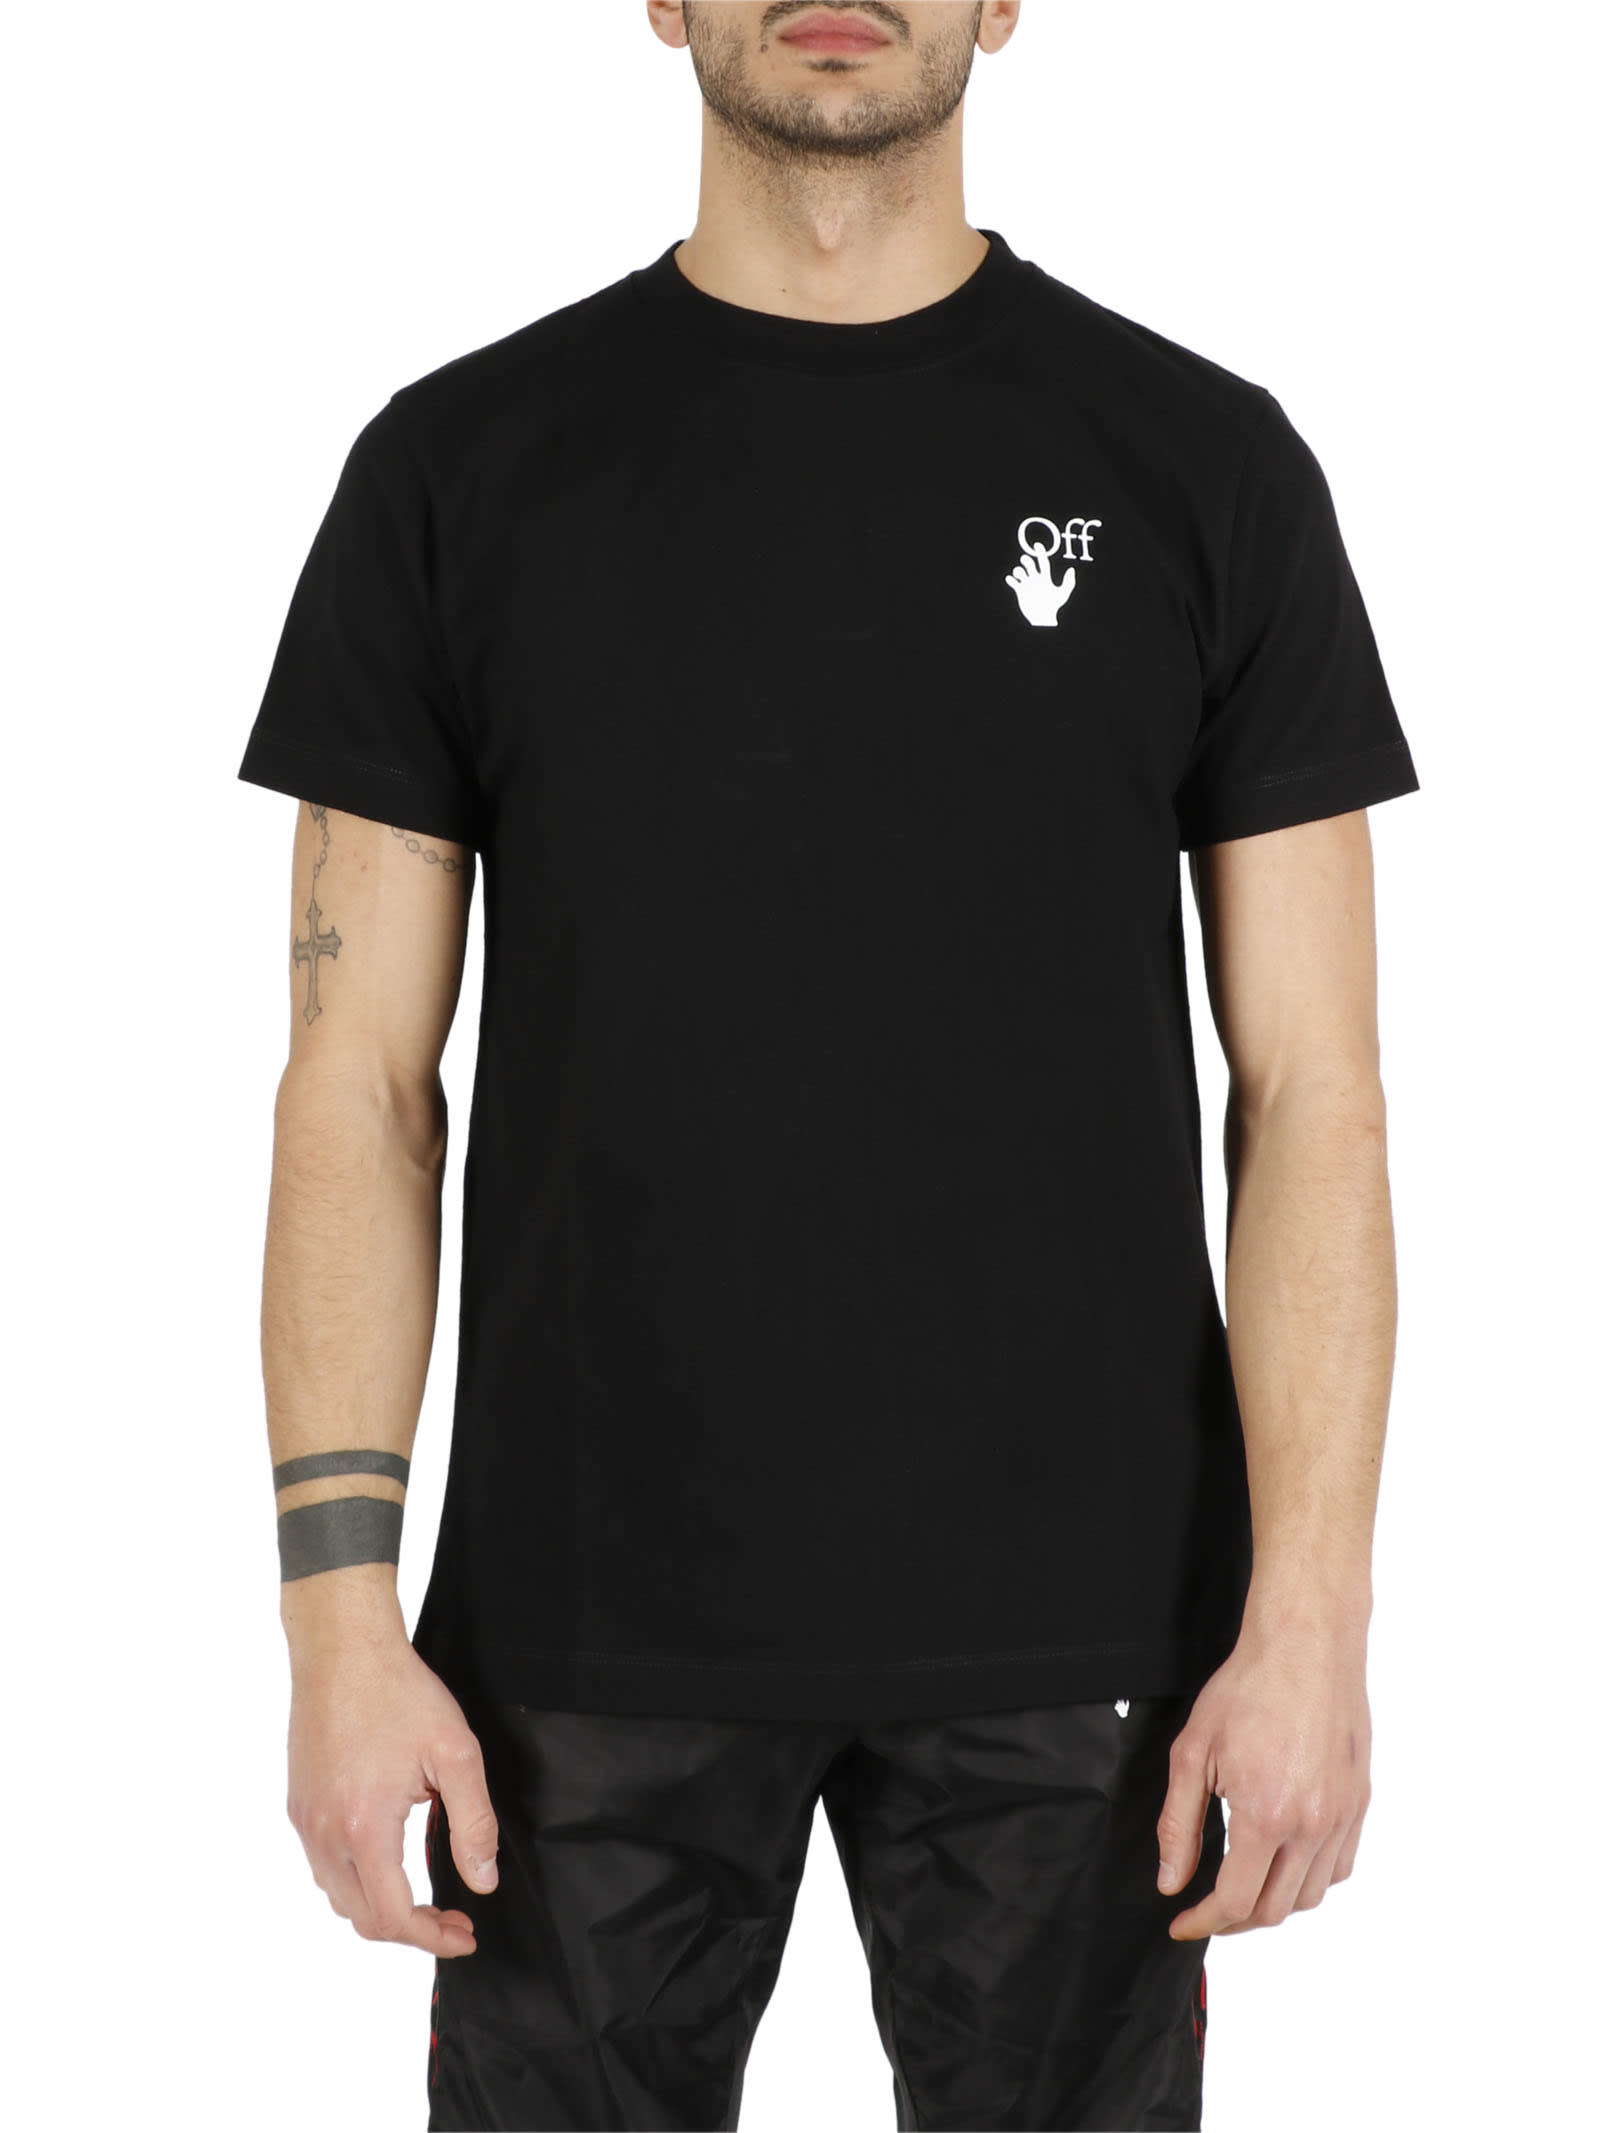 Off-White Cottons MARKER T-SHIRT